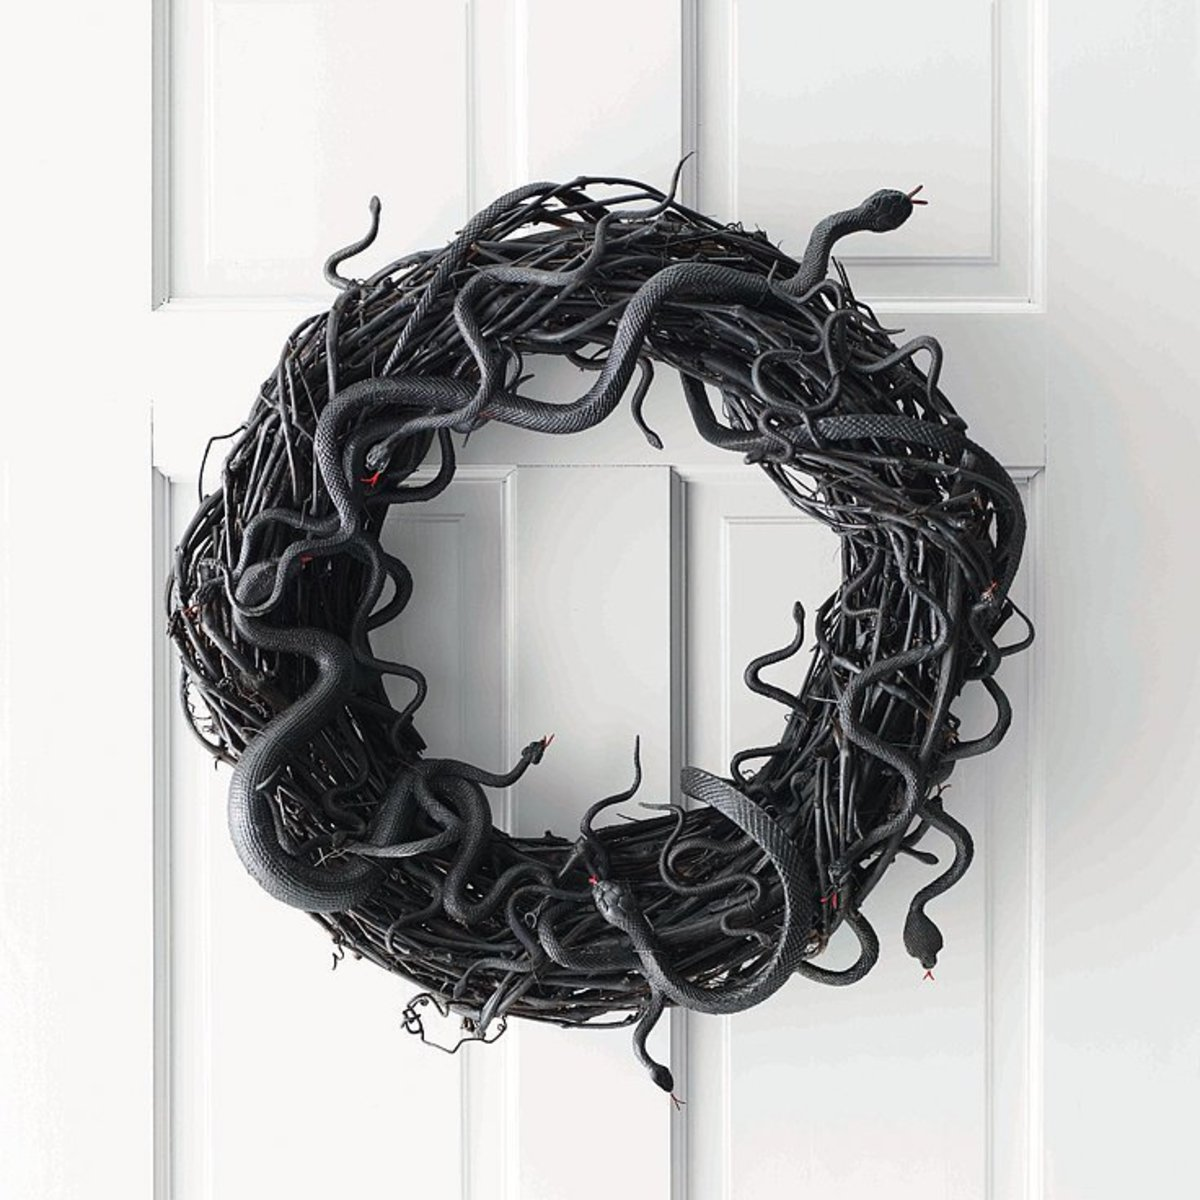 This was the first Halloween wreath that I made.  I had bought a bunch of things to decorate for Halloween, among them a bag of snakes.